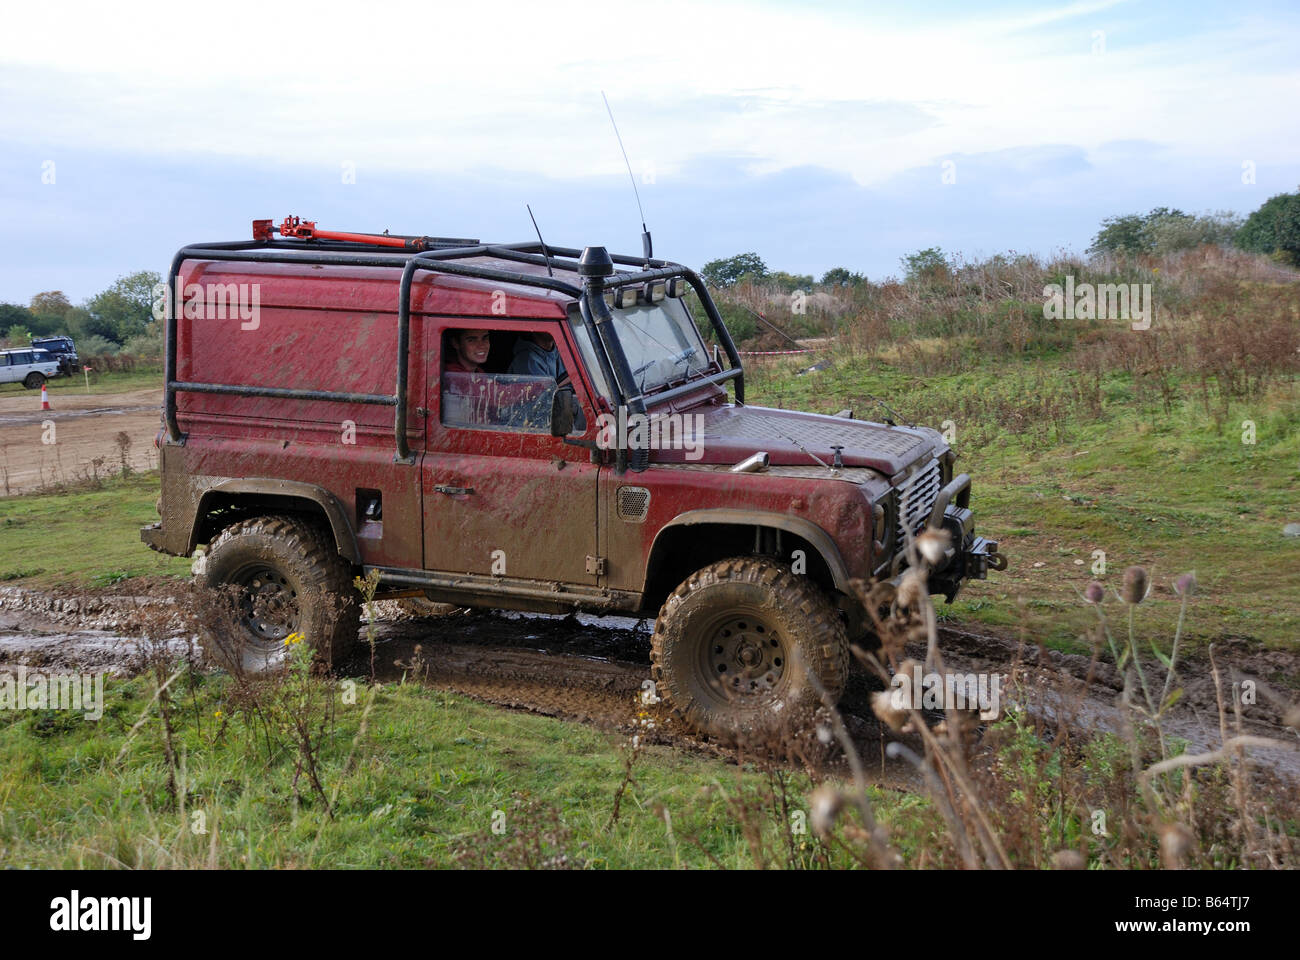 Mud splattered Land Rover Defender 90 kitted out for off road work with raised suspension anti roll cage winch lugged - Stock Image